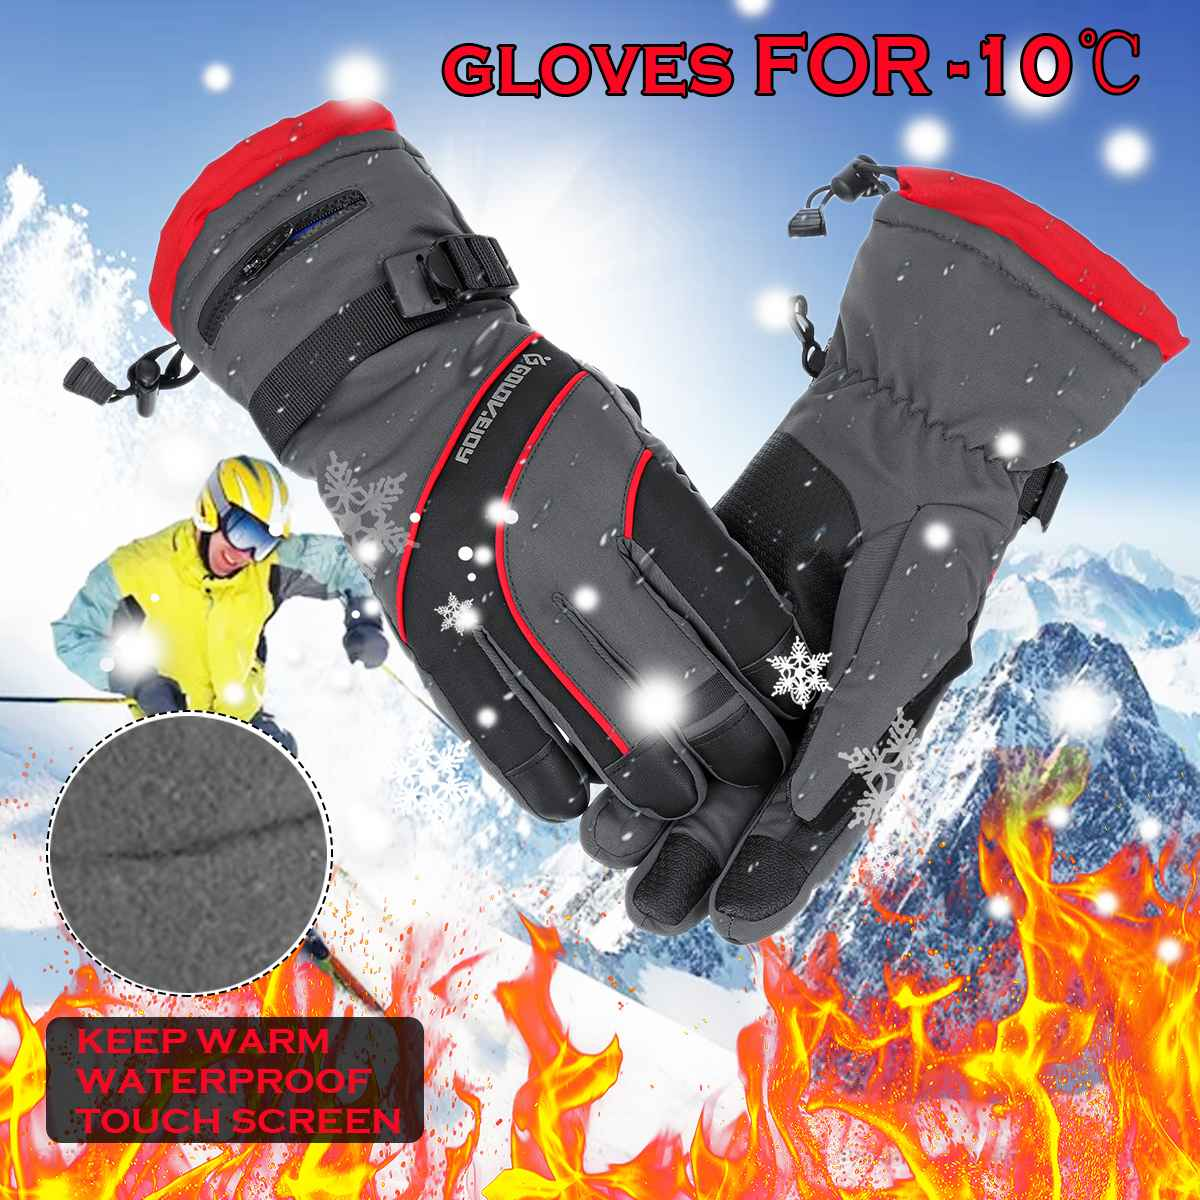 2020 Men's Ski Gloves Fleece Snowboard Gloves Snowmobile Motorcycle Riding Winter Gloves Windproof Waterproof Unisex Snow Gloves